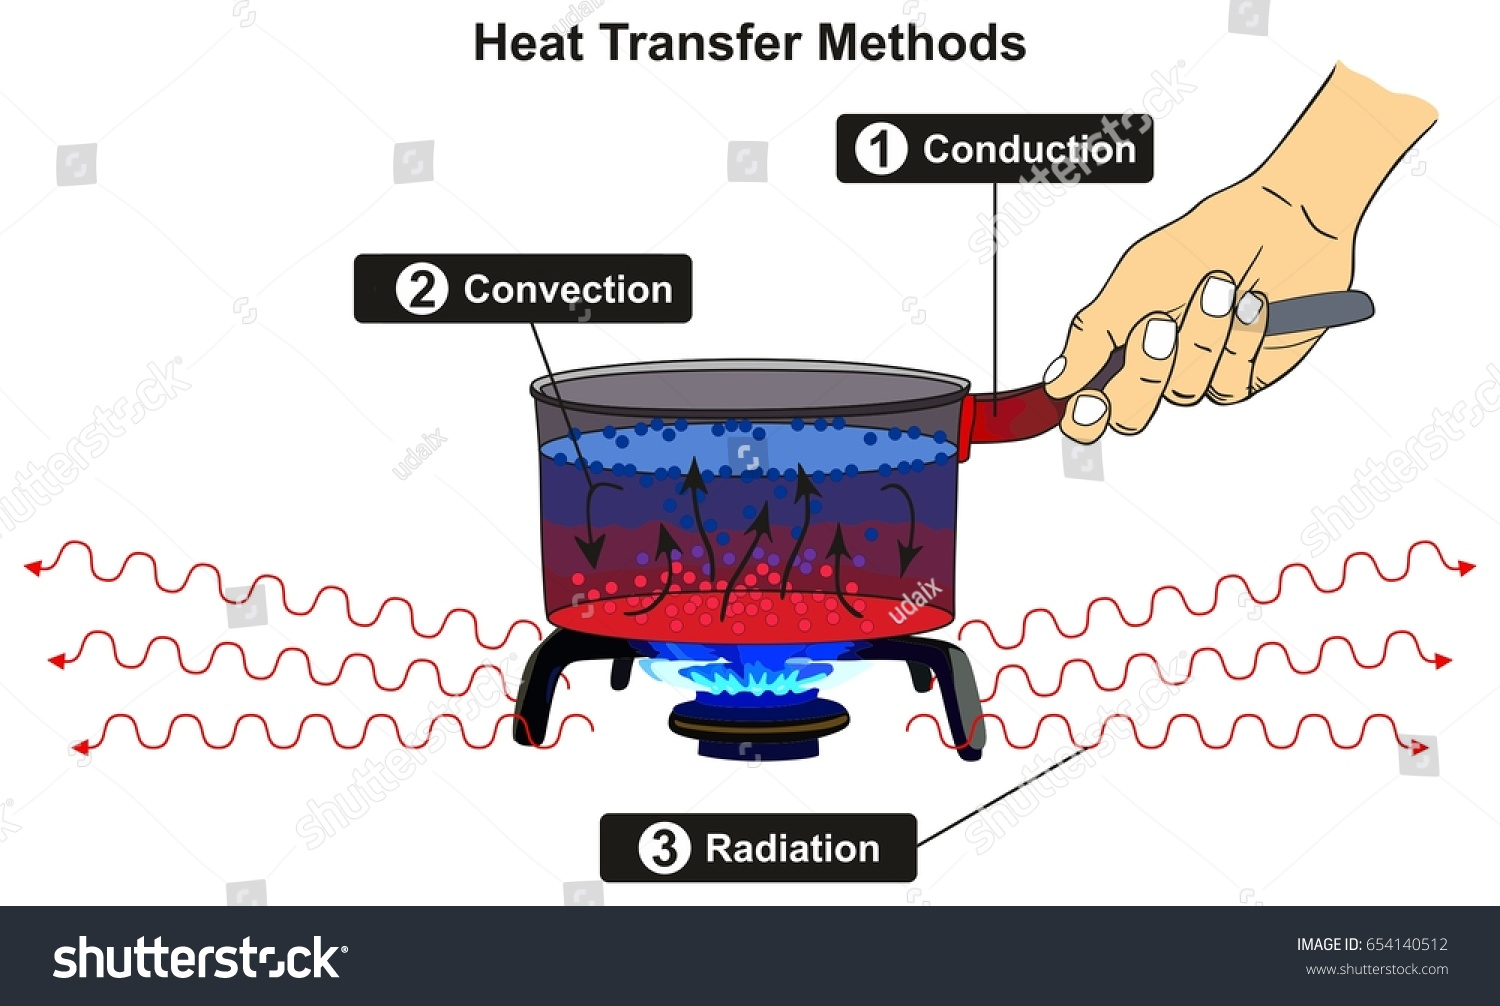 basic information transfer methods Heat transfer is a discipline of thermal engineering that concerns the generation, use, conversion, and exchange of thermal energy between physical systemsheat transfer is classified into various mechanisms, such as thermal conduction, thermal convection, thermal radiation, and transfer of energy by phase changesengineers also consider the transfer of mass of differing chemical species.